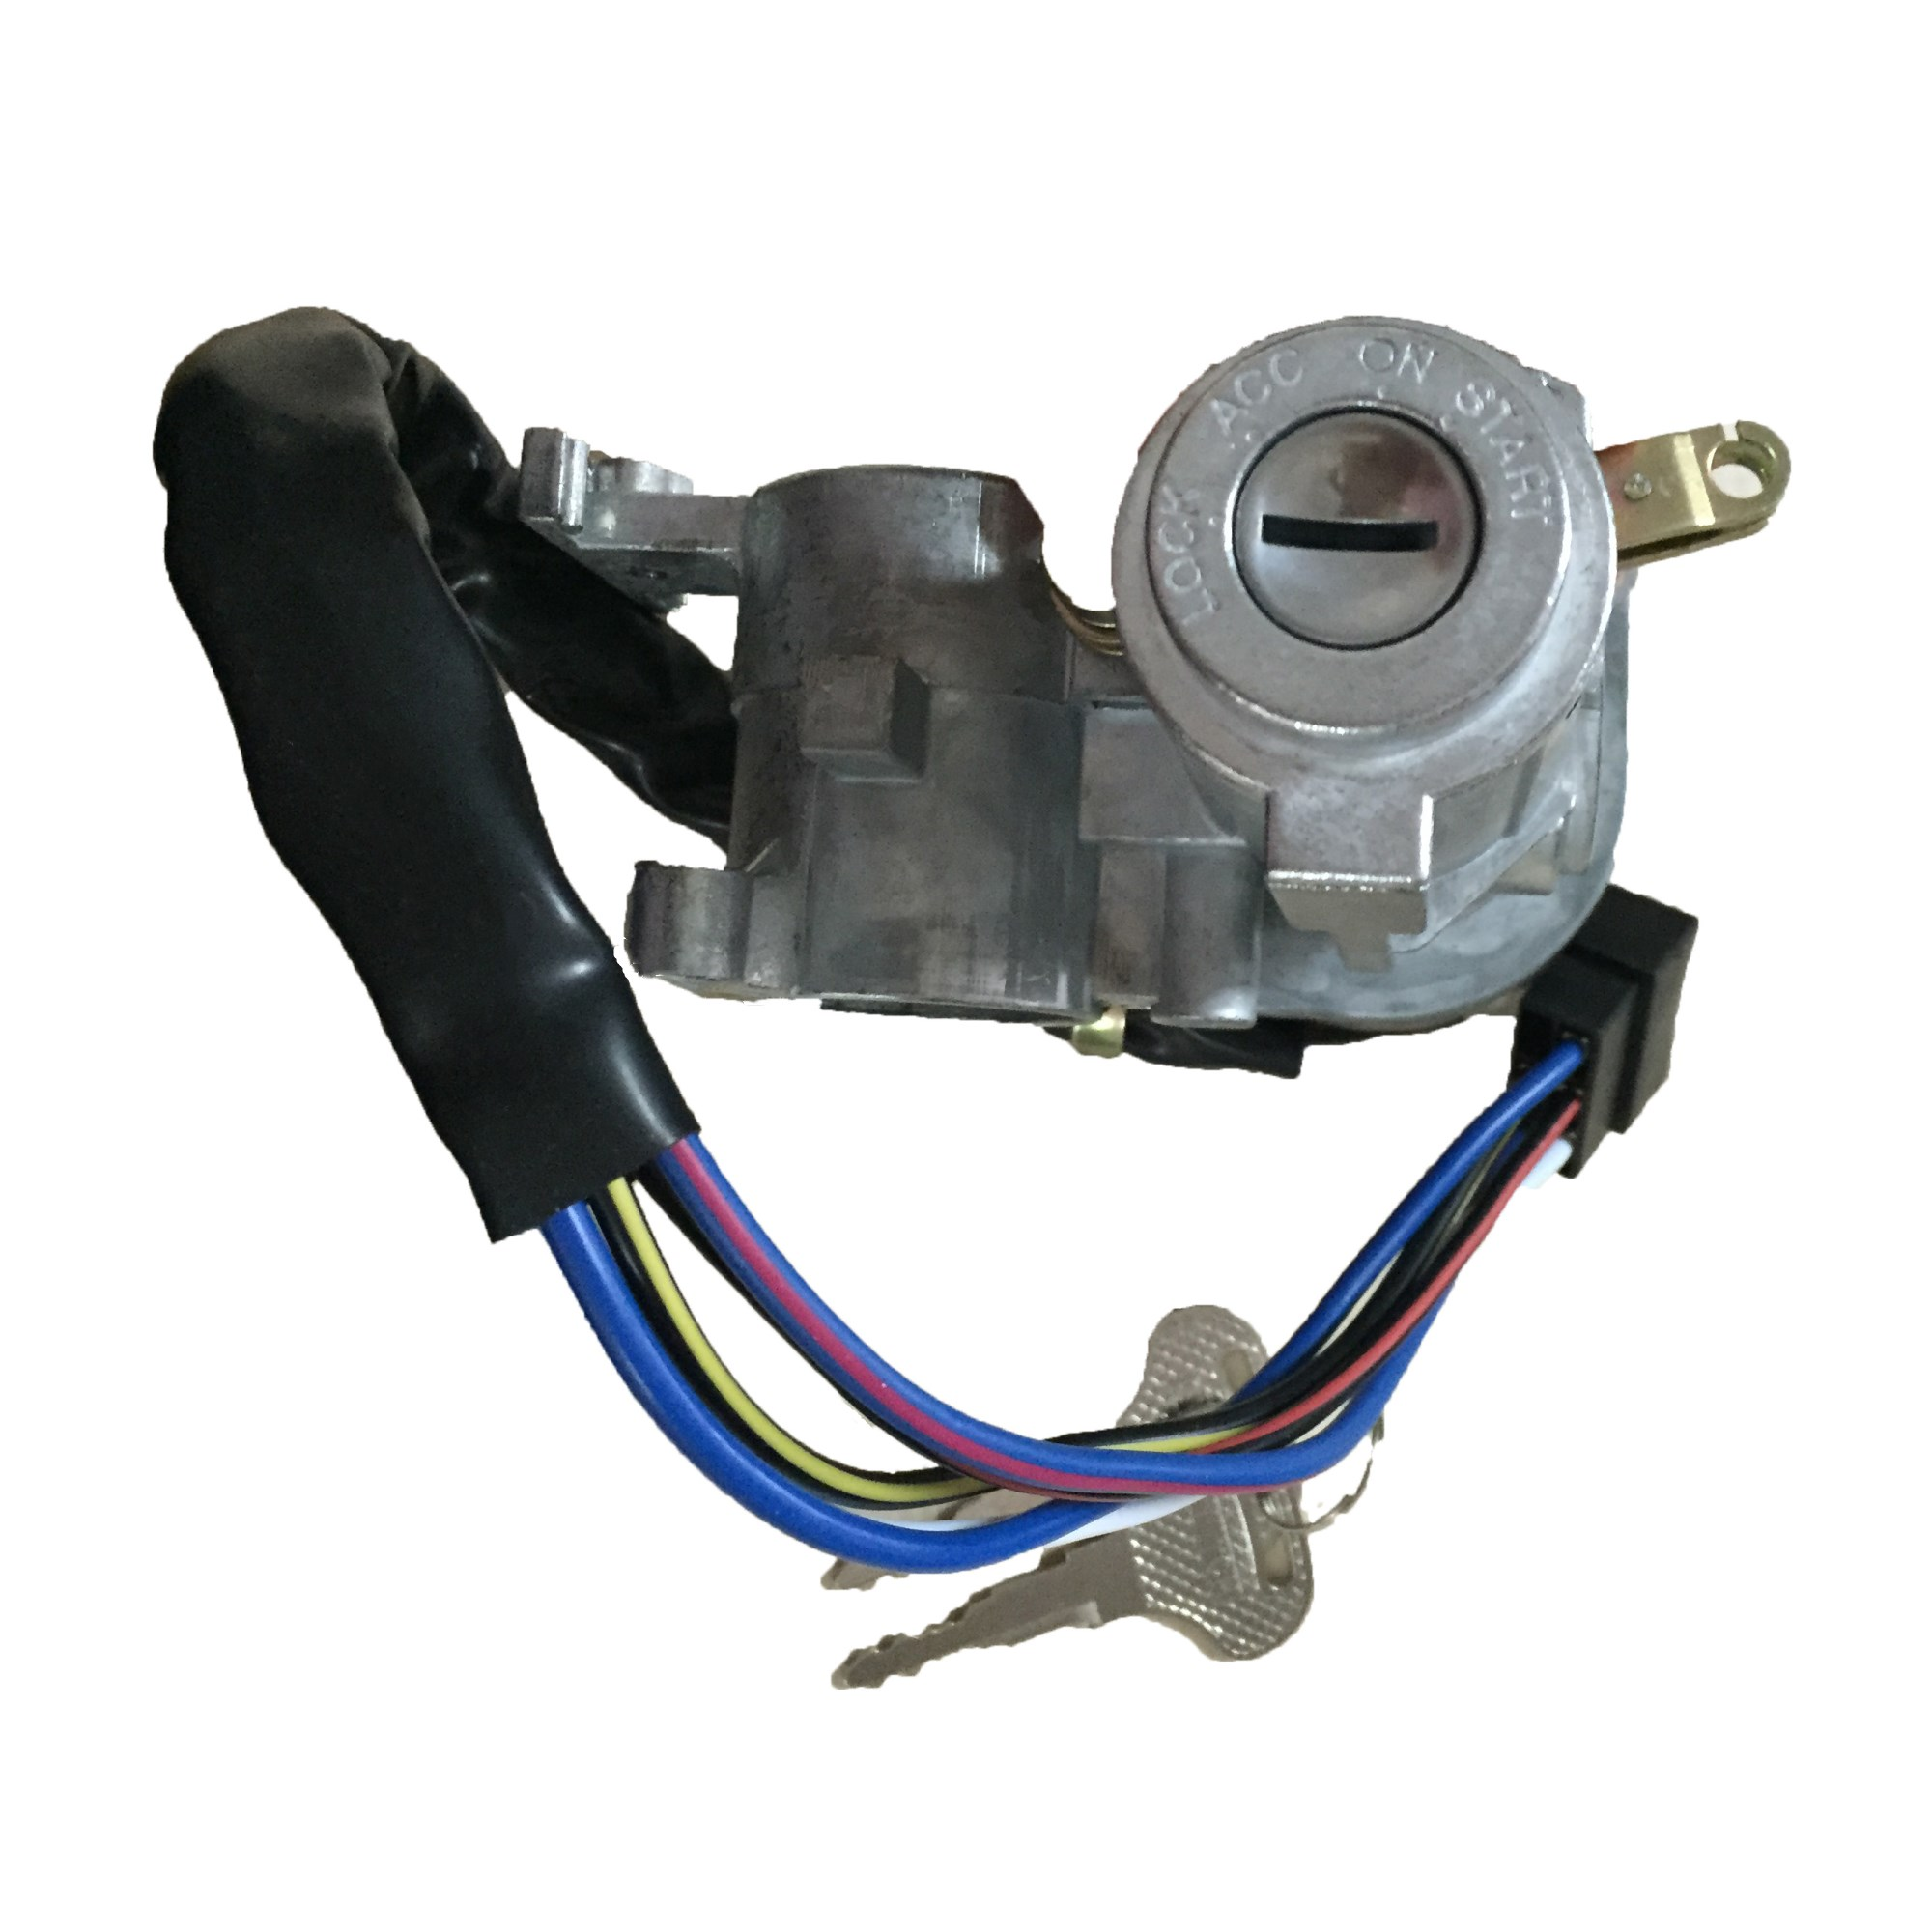 small resolution of ignition starter switch for mitsubishi canter fe114 111 5p wire mb098733 in car switches relays from automobiles motorcycles on aliexpress com alibaba